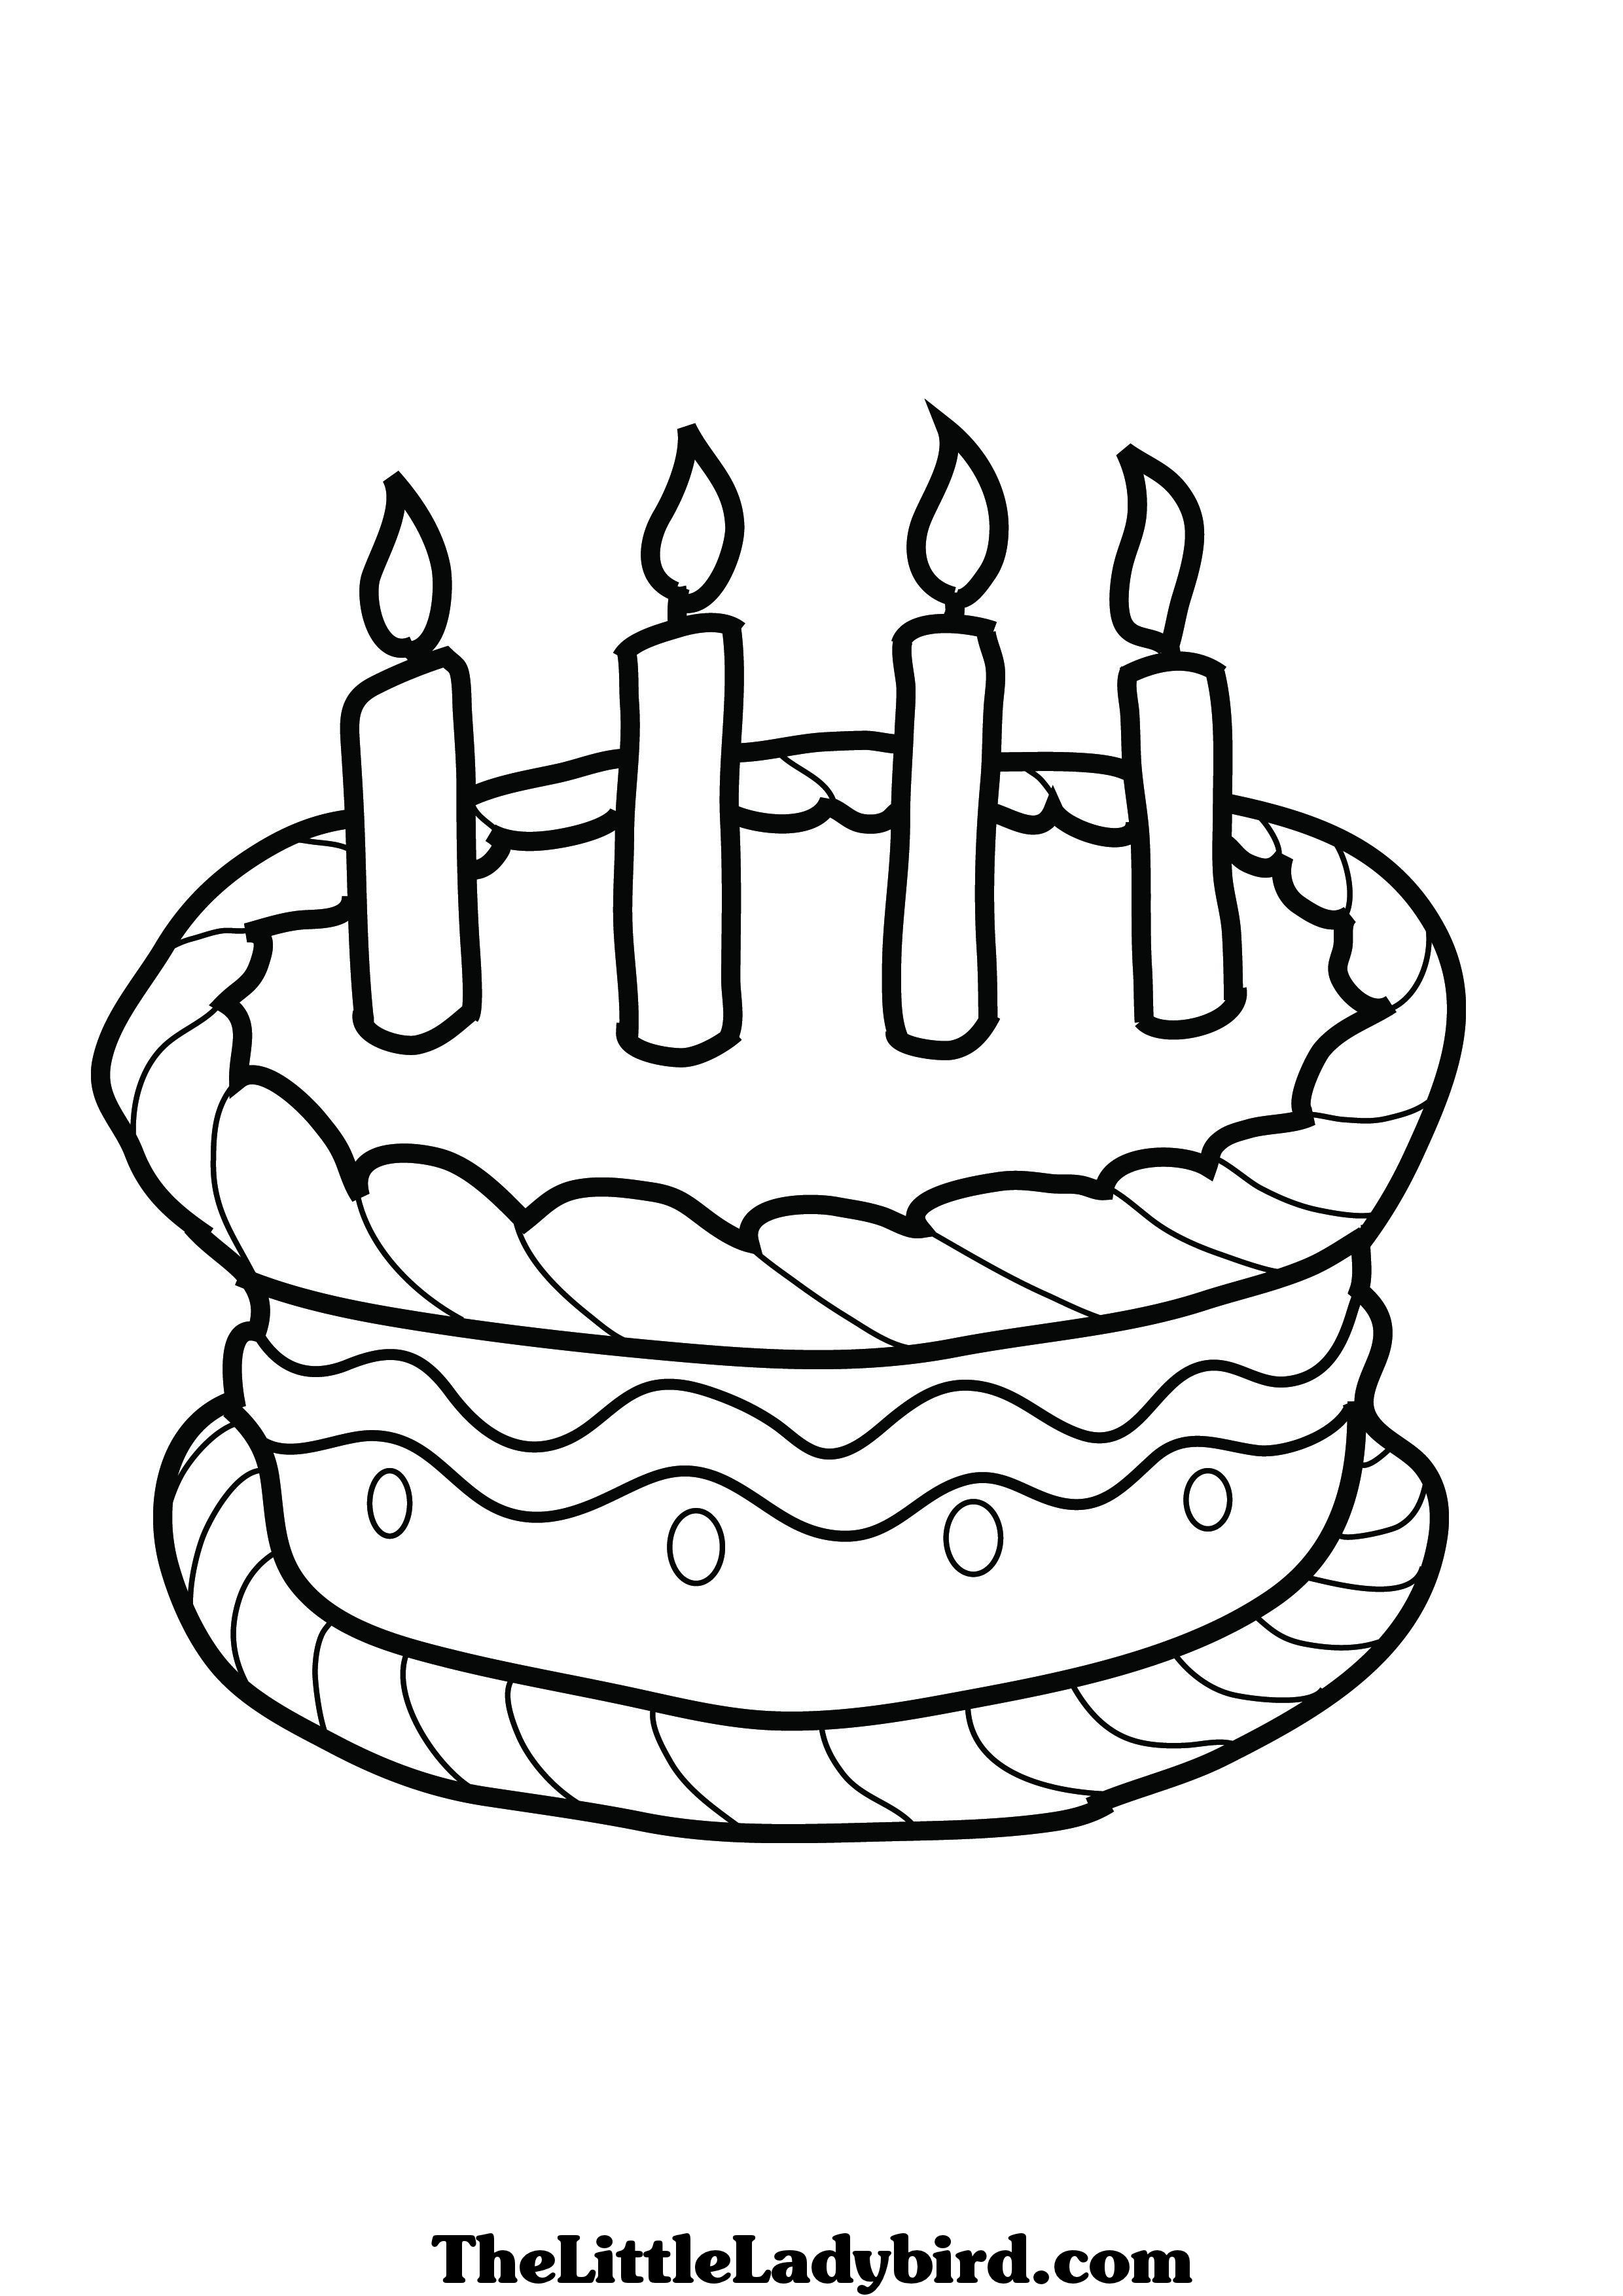 2480x3508 Excellent Birthday Cake Coloring Page Coloring Pages Cakes